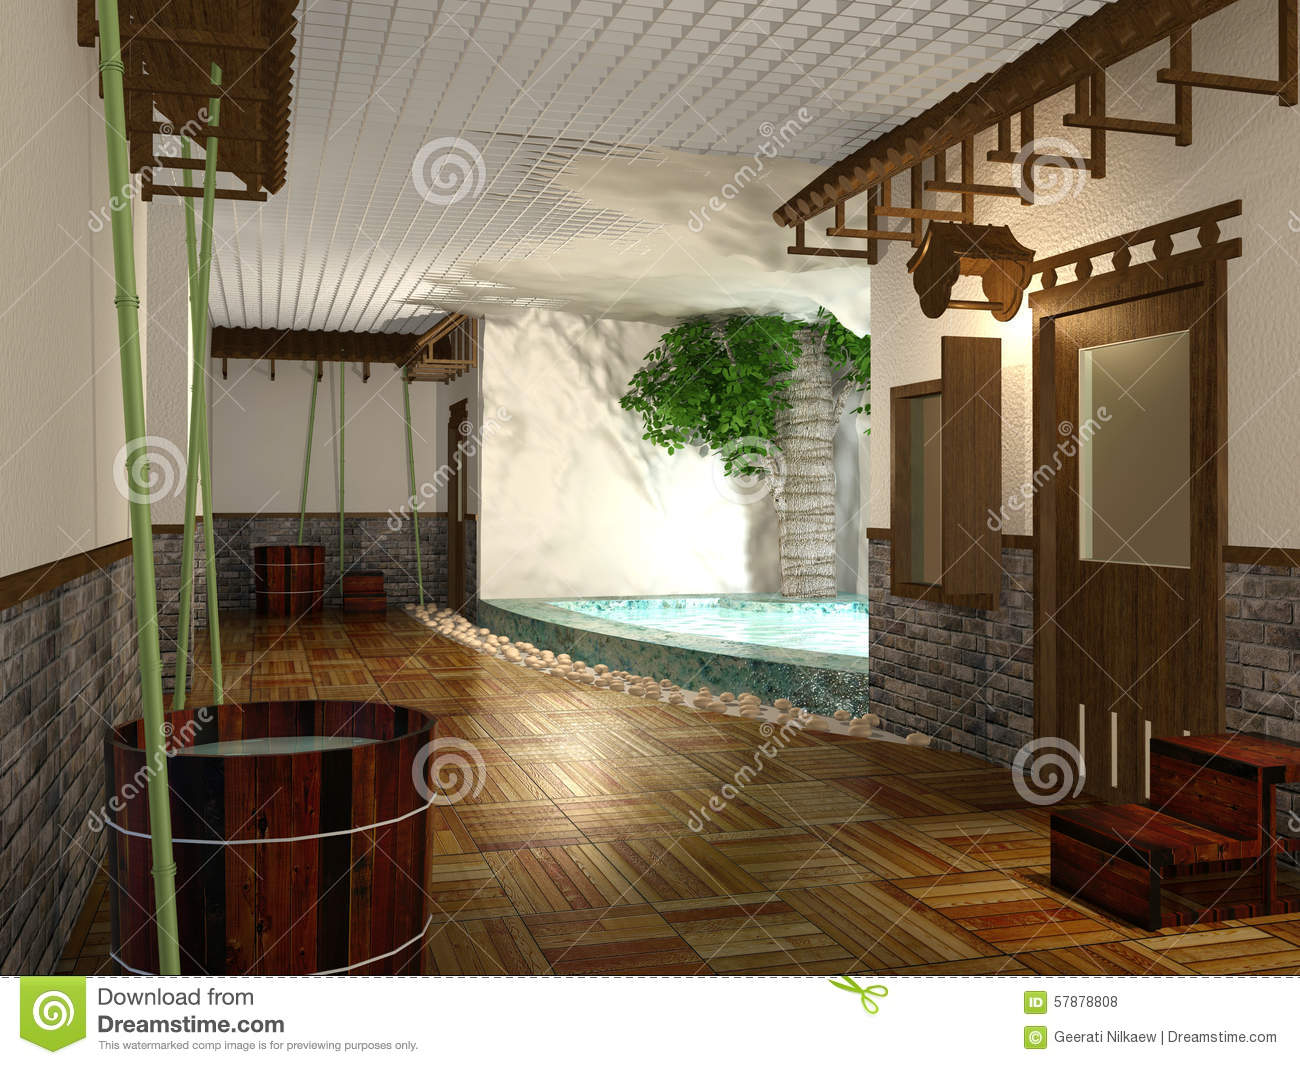 3d Rendering Japanese Style Public Shower Room Interior